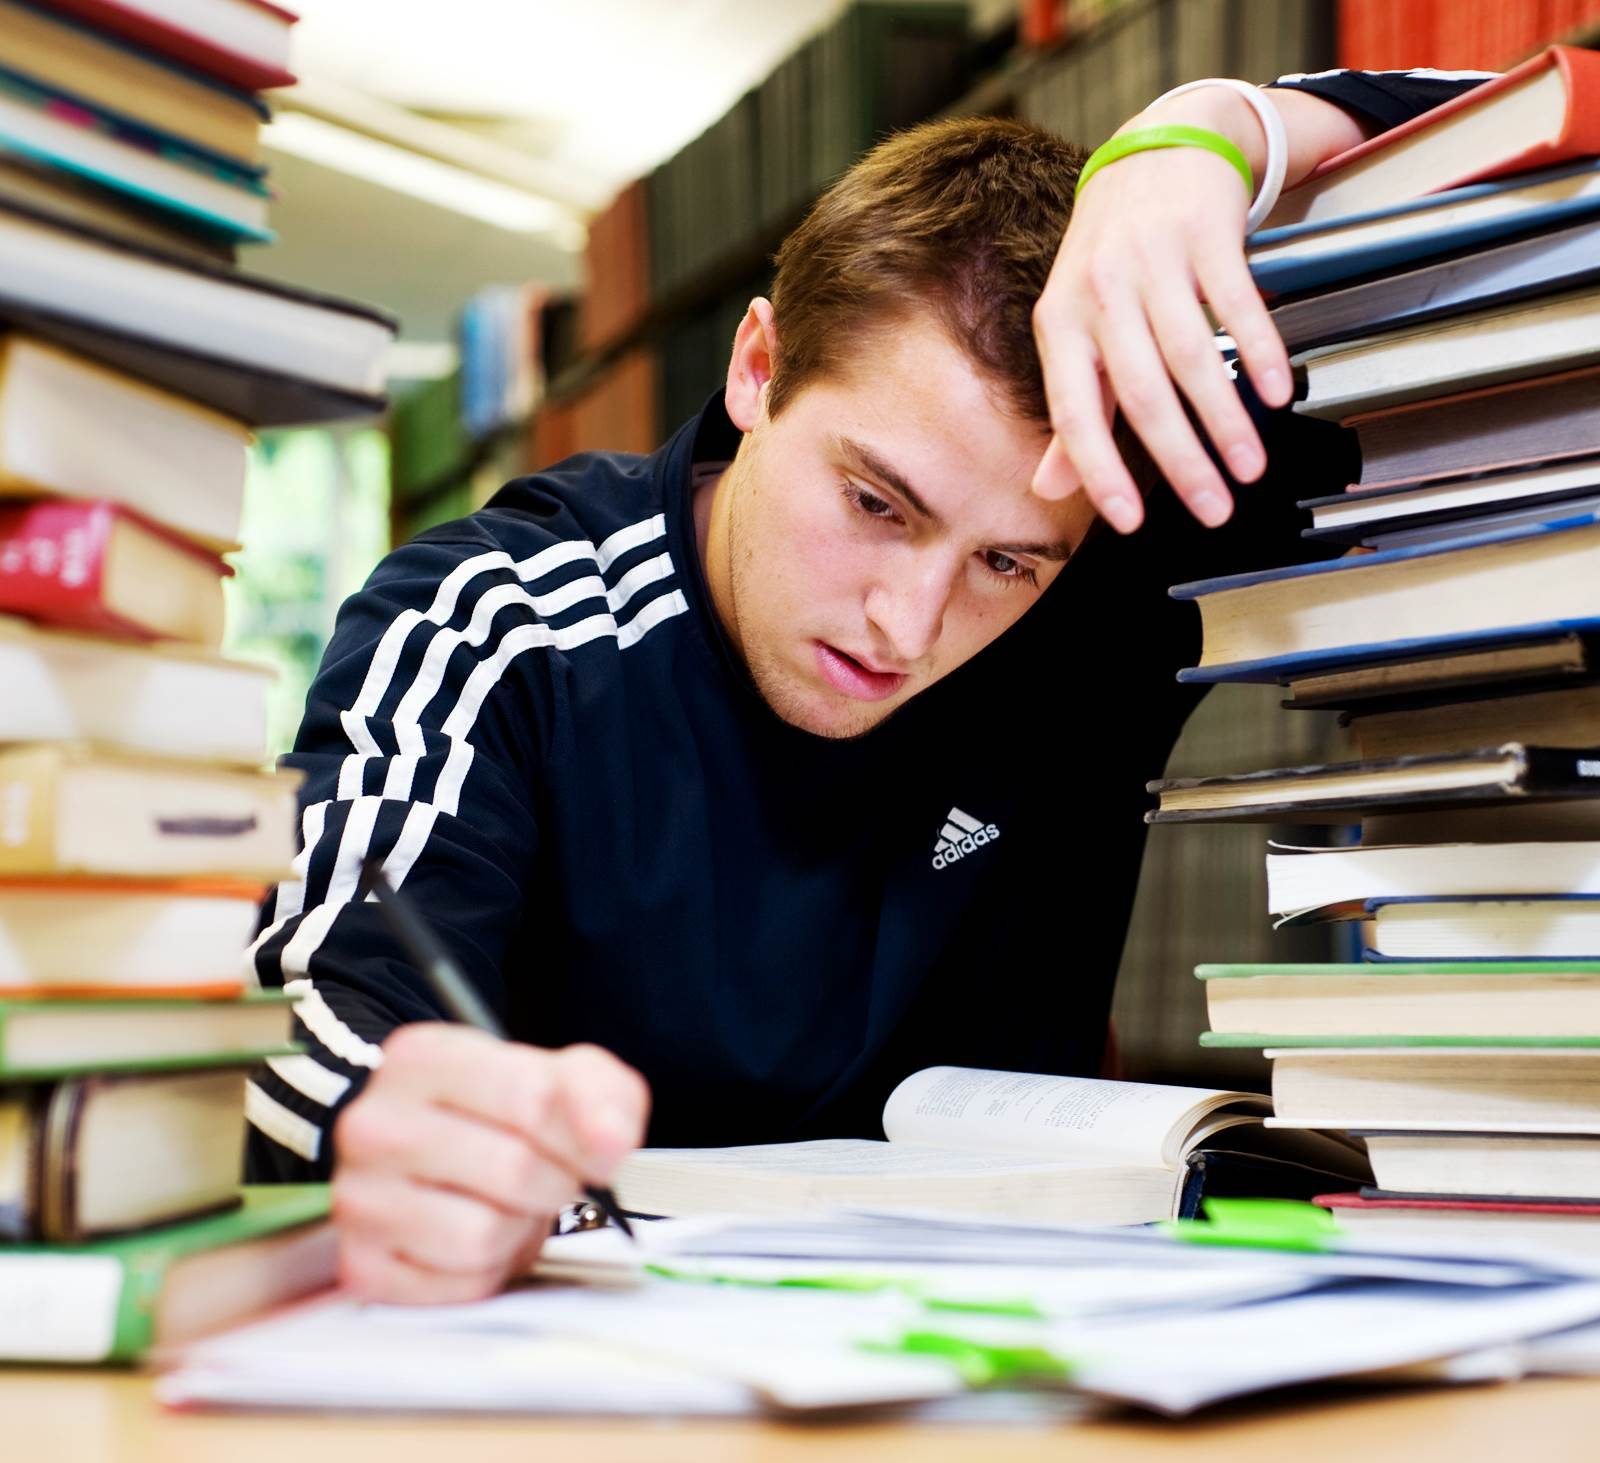 an examination of the stress in college students Common causes of stress among students  foods that can increase stress levels in students include those that are  physical symptoms of stress in college students.